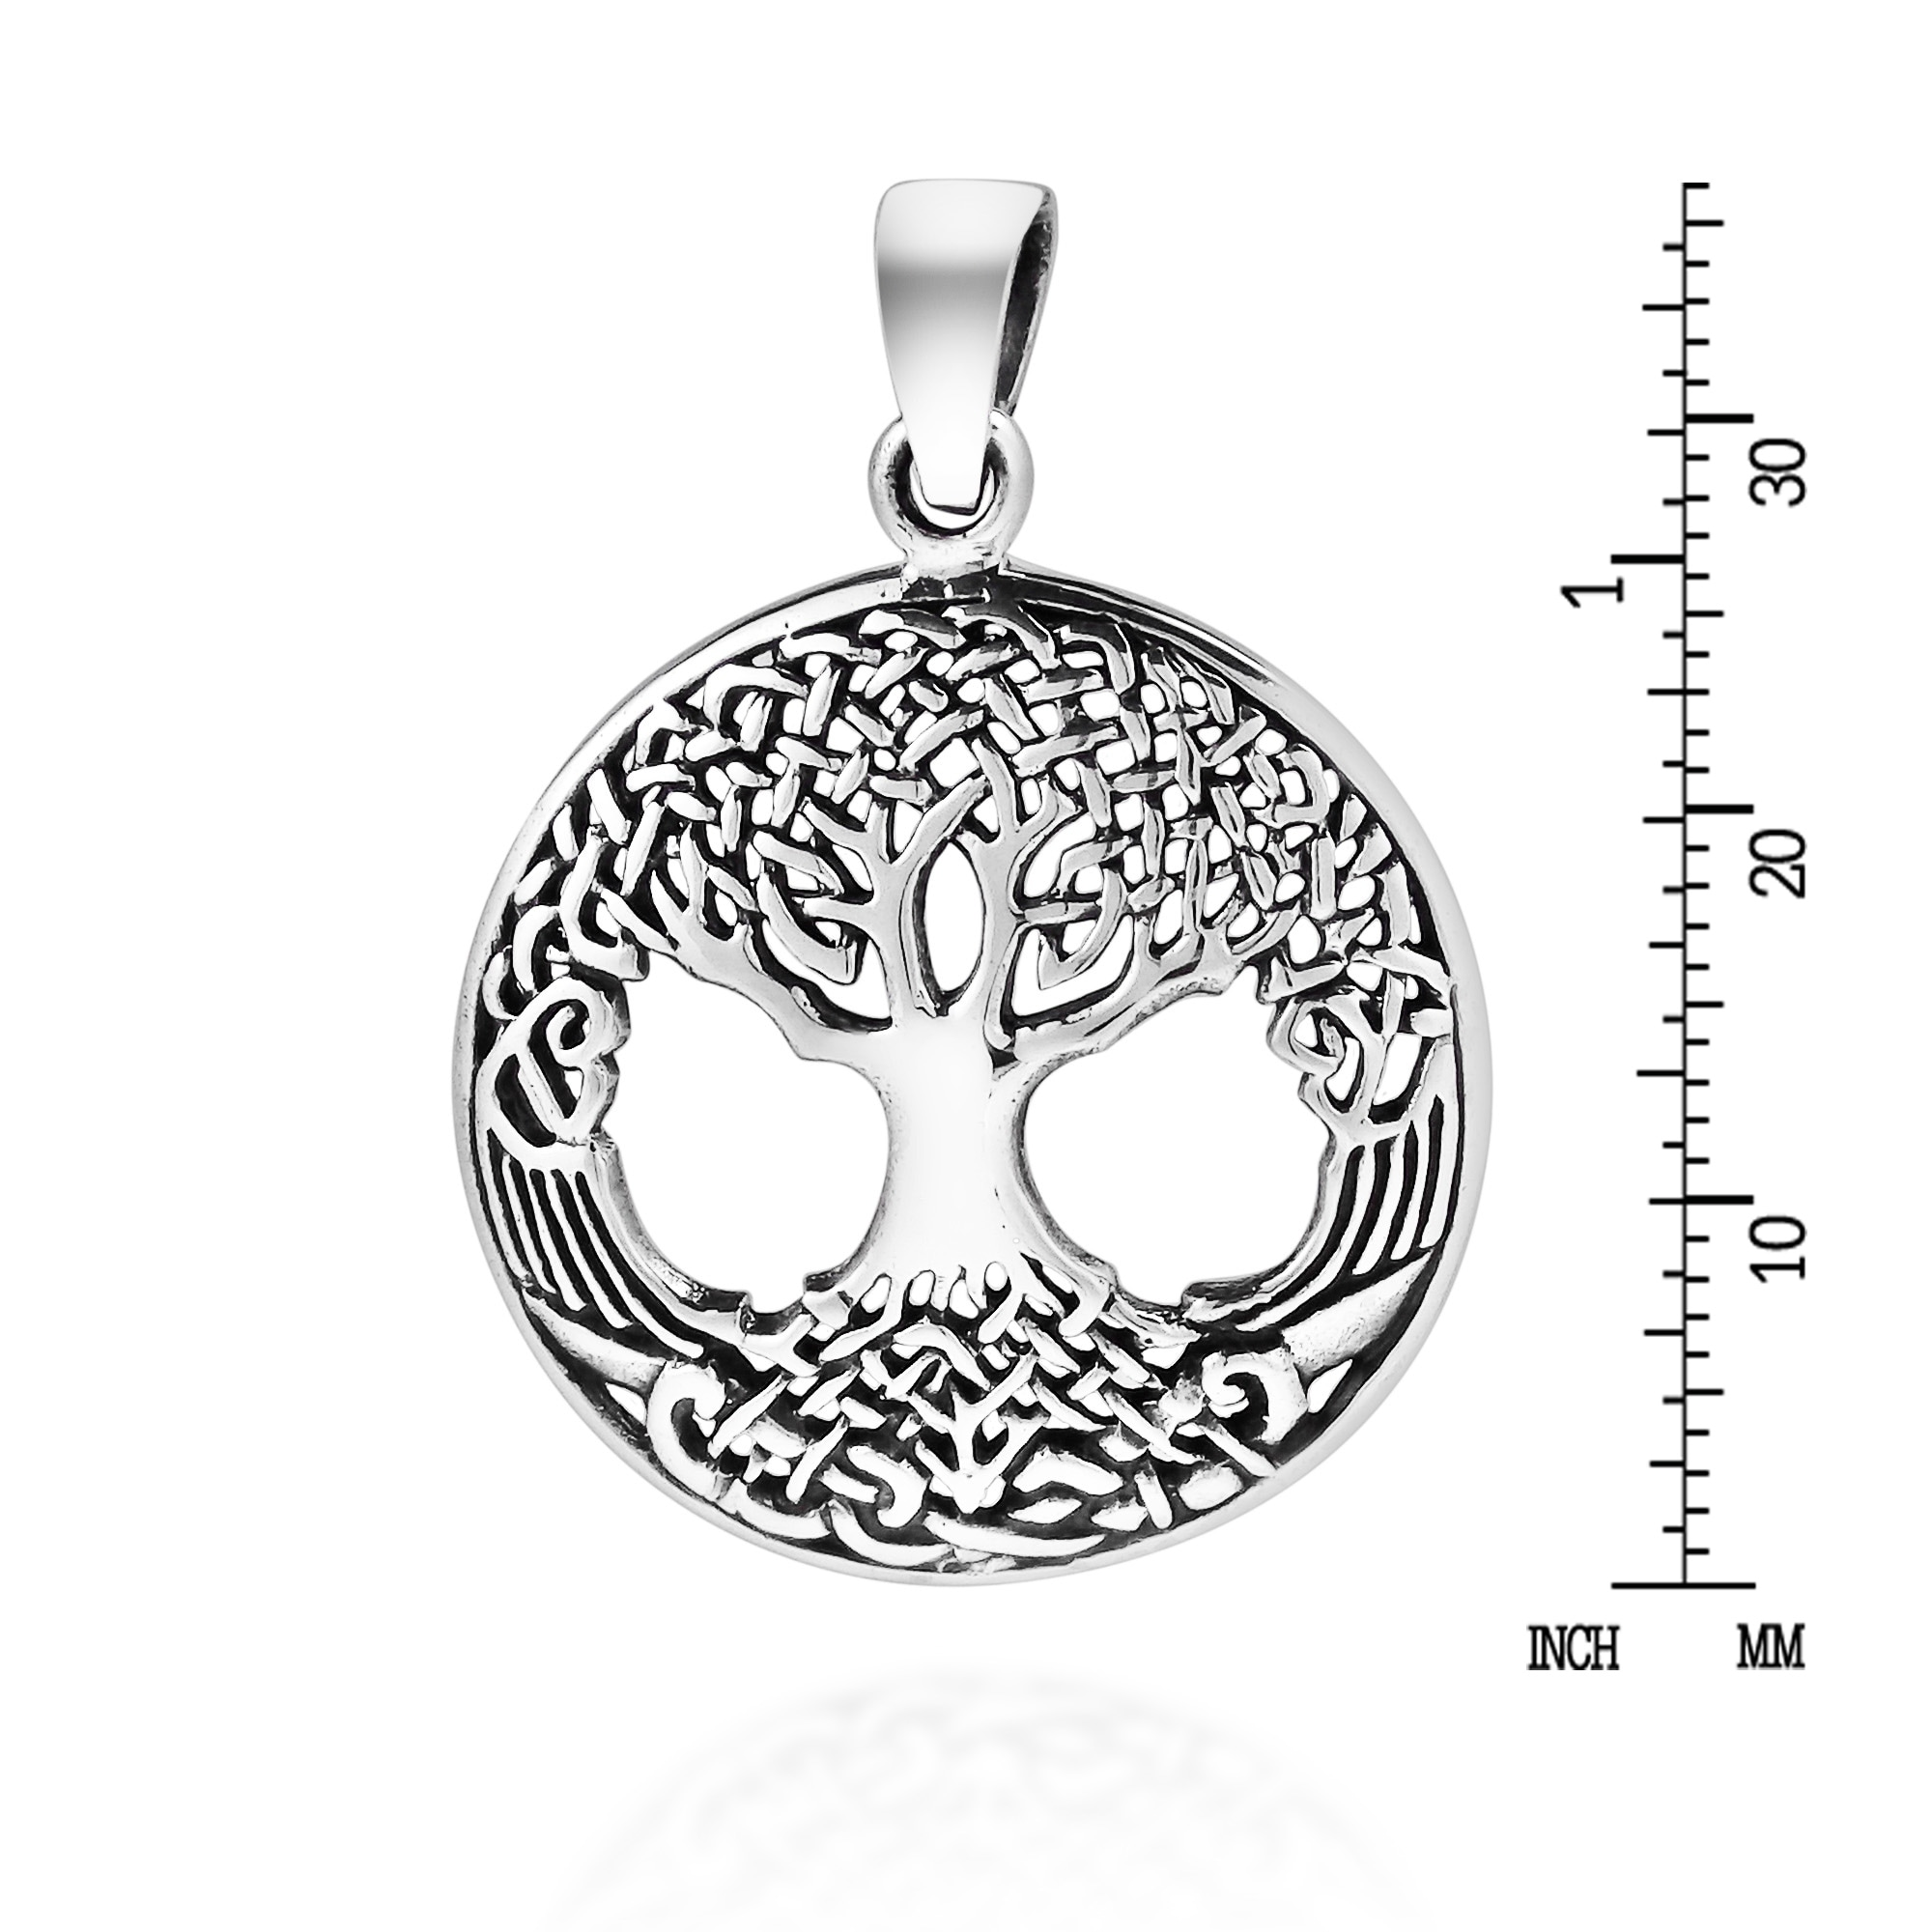 from way detail pin is impressive your necklaces hangs trinity shanore celtic beside with a the motifs pendant materials knot finest shamrocks necklace enjoy beautiful featuring intricate an to irish crafts favorite cross